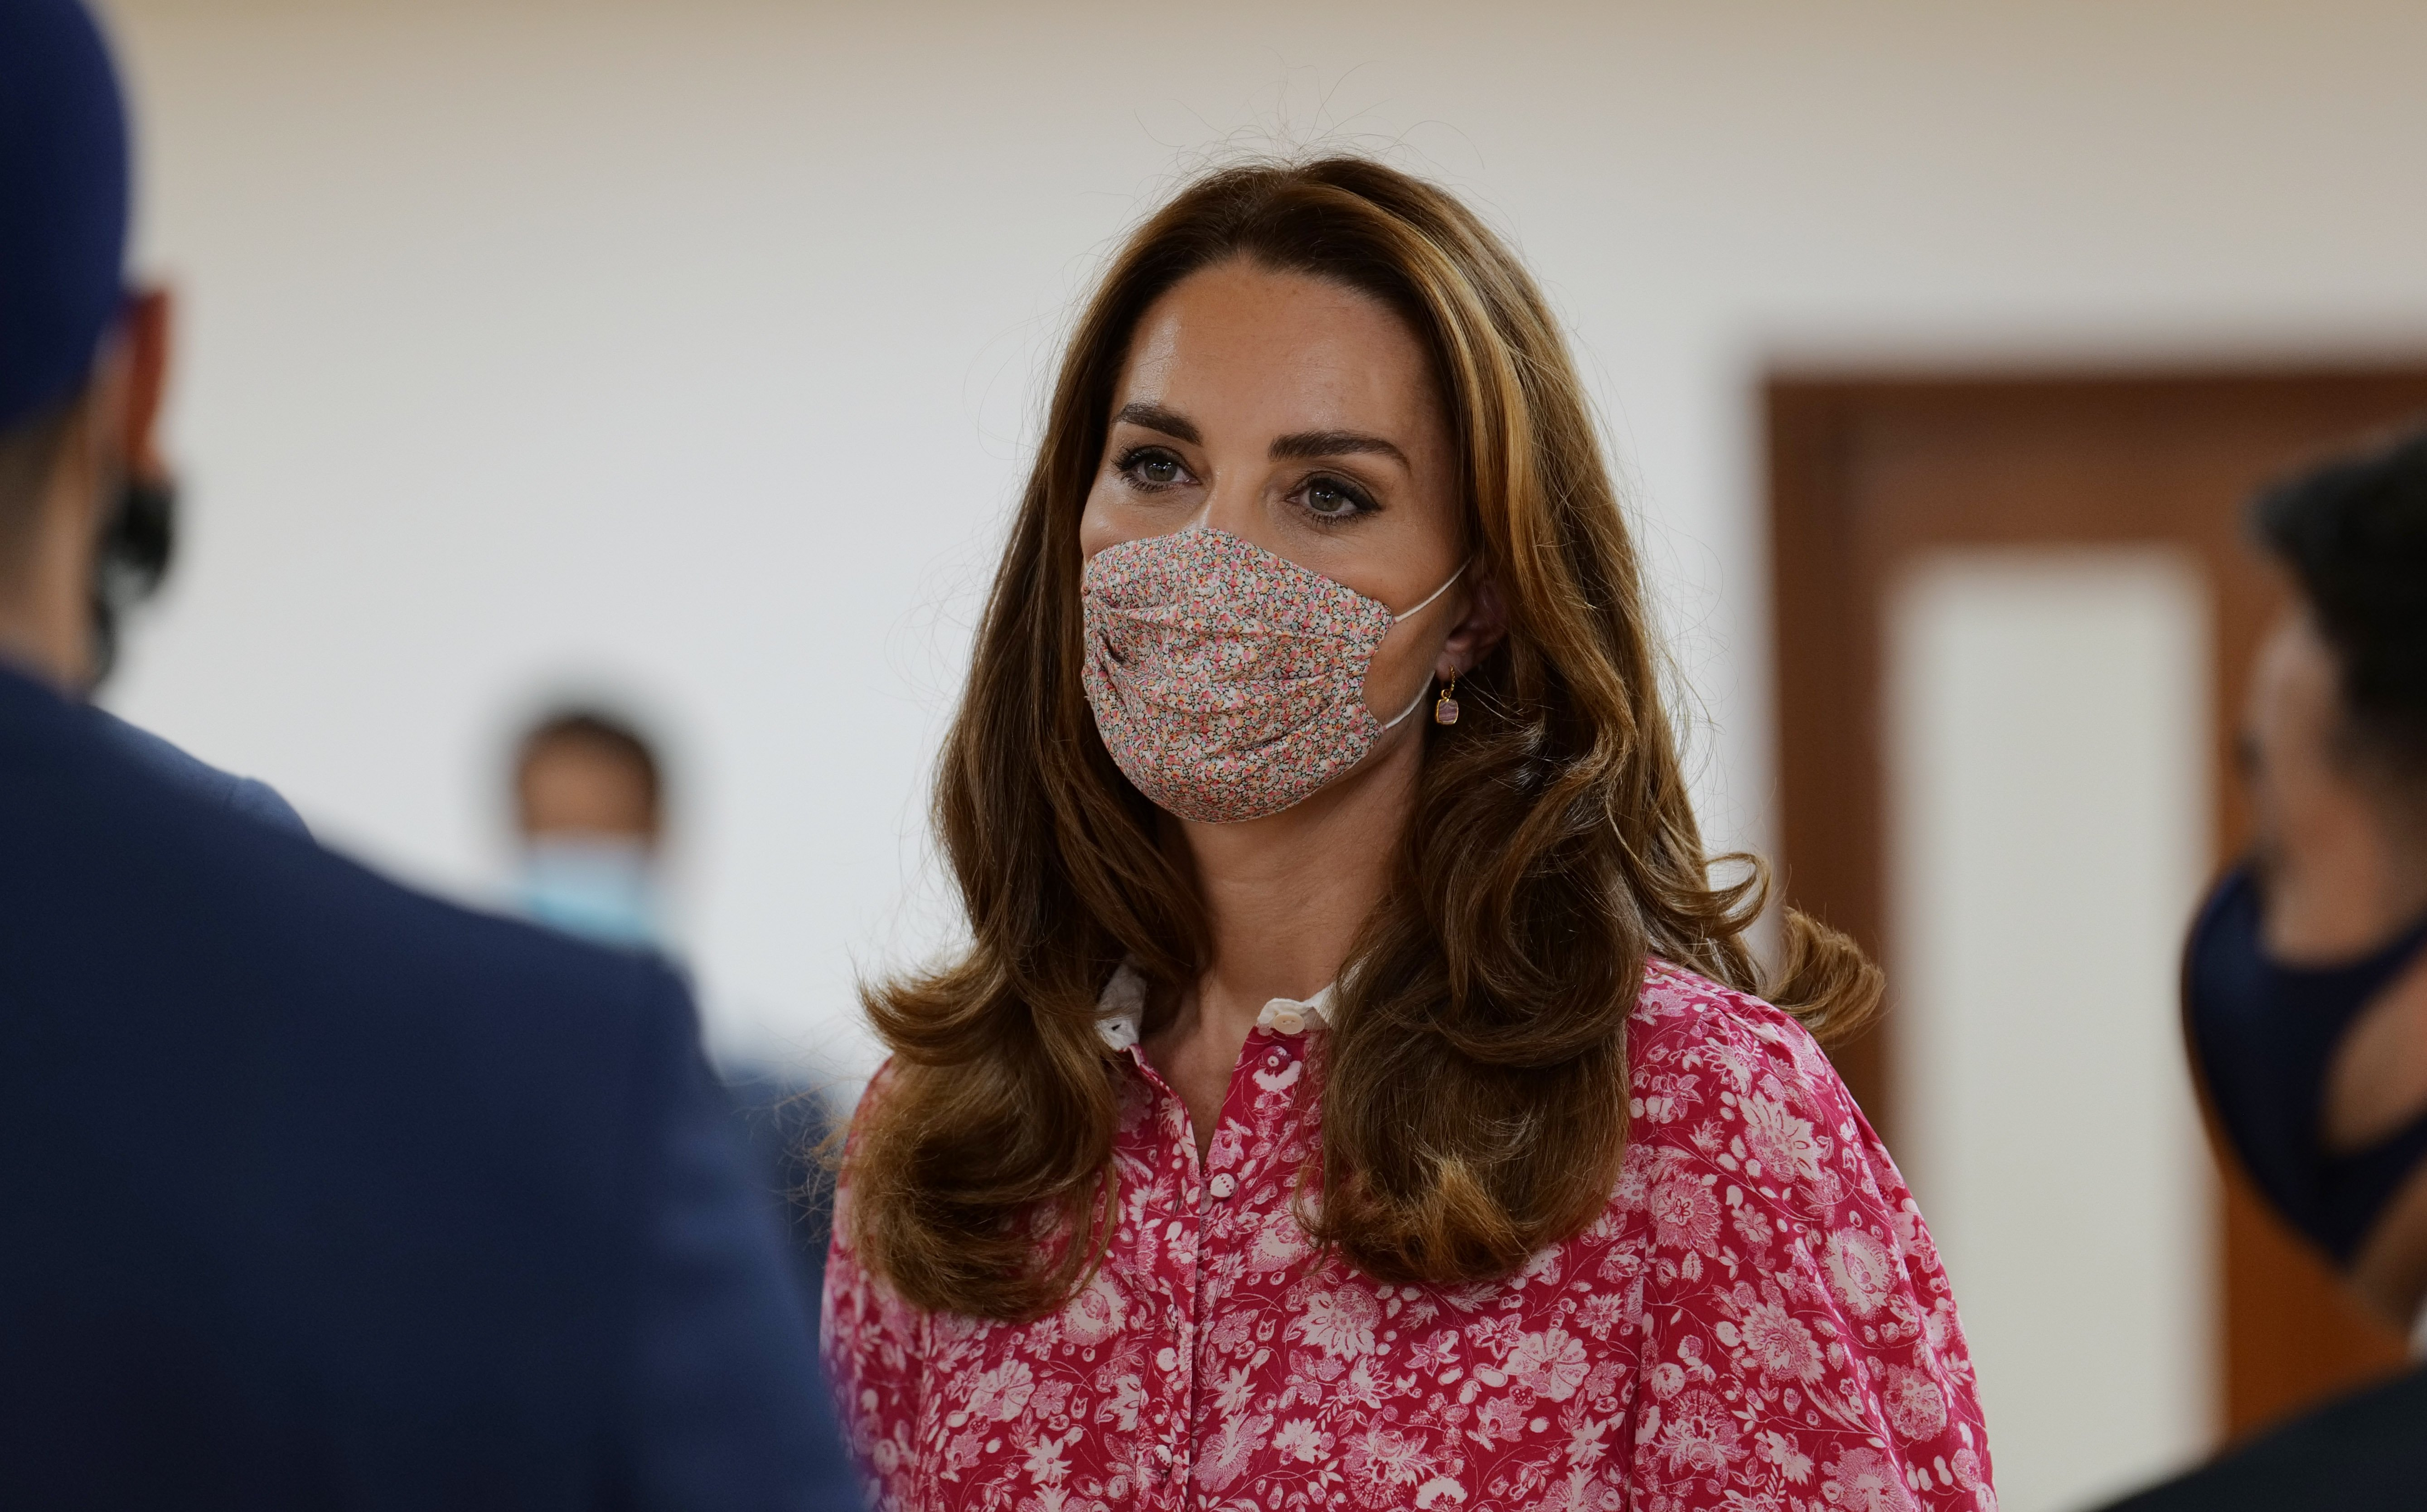 Kate Middleton during a visit to the East London Mosque on September 15, 2020, in London, England. | Source: Getty Images.